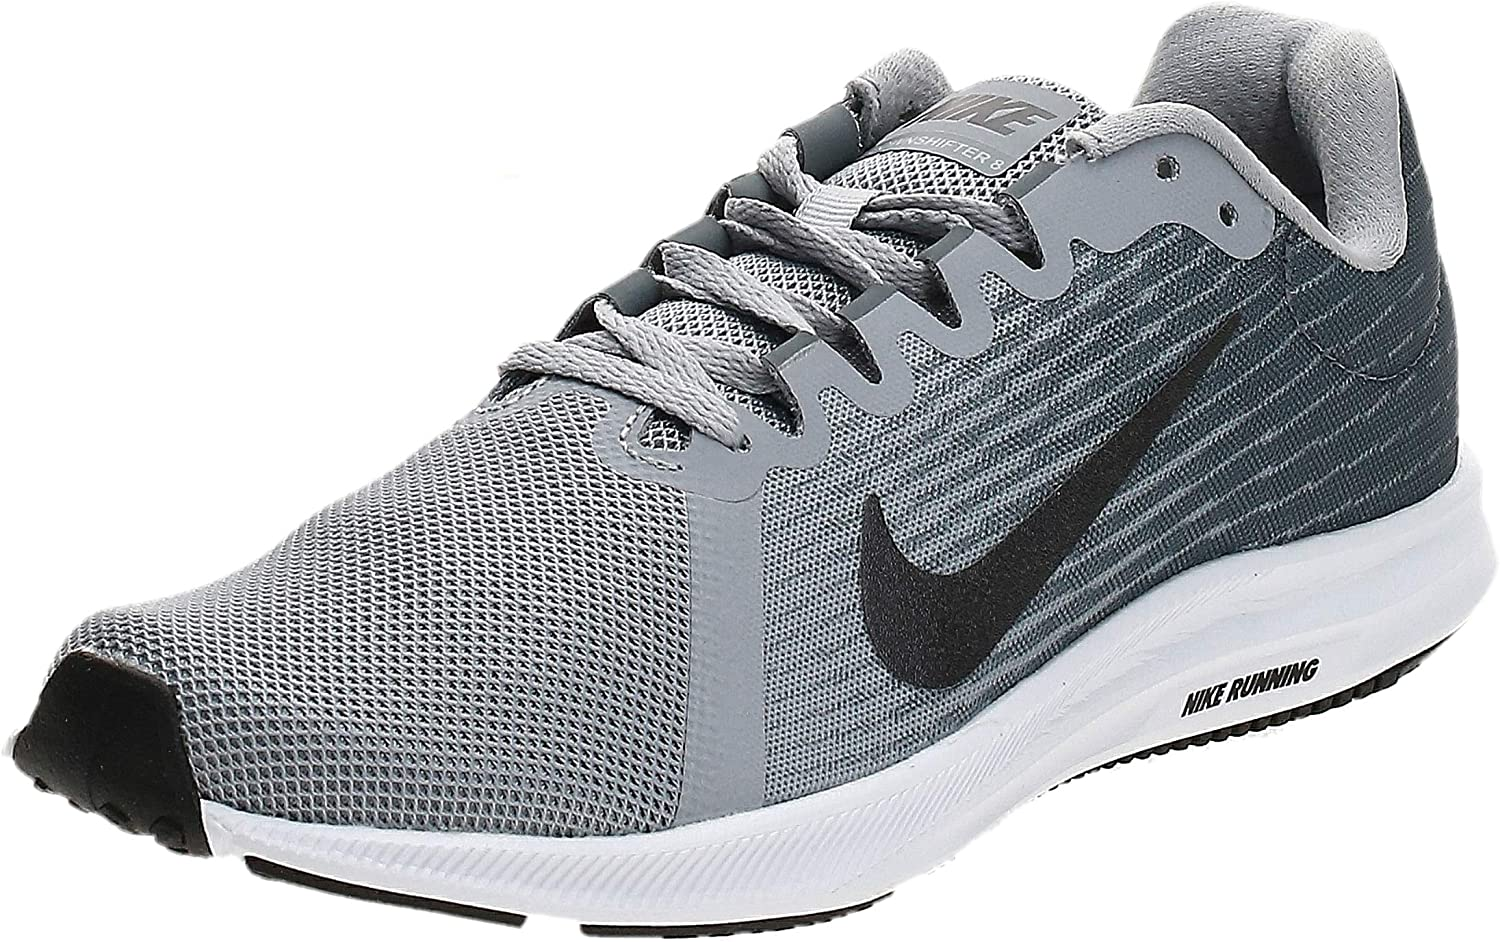 Nike Downshifter 8, Zapatillas de Entrenamiento para Mujer, Gris (Wolf Grey/Metallic Dark Grey-Cool Grey-Black 006), 38 EU: Amazon.es: Zapatos y complementos